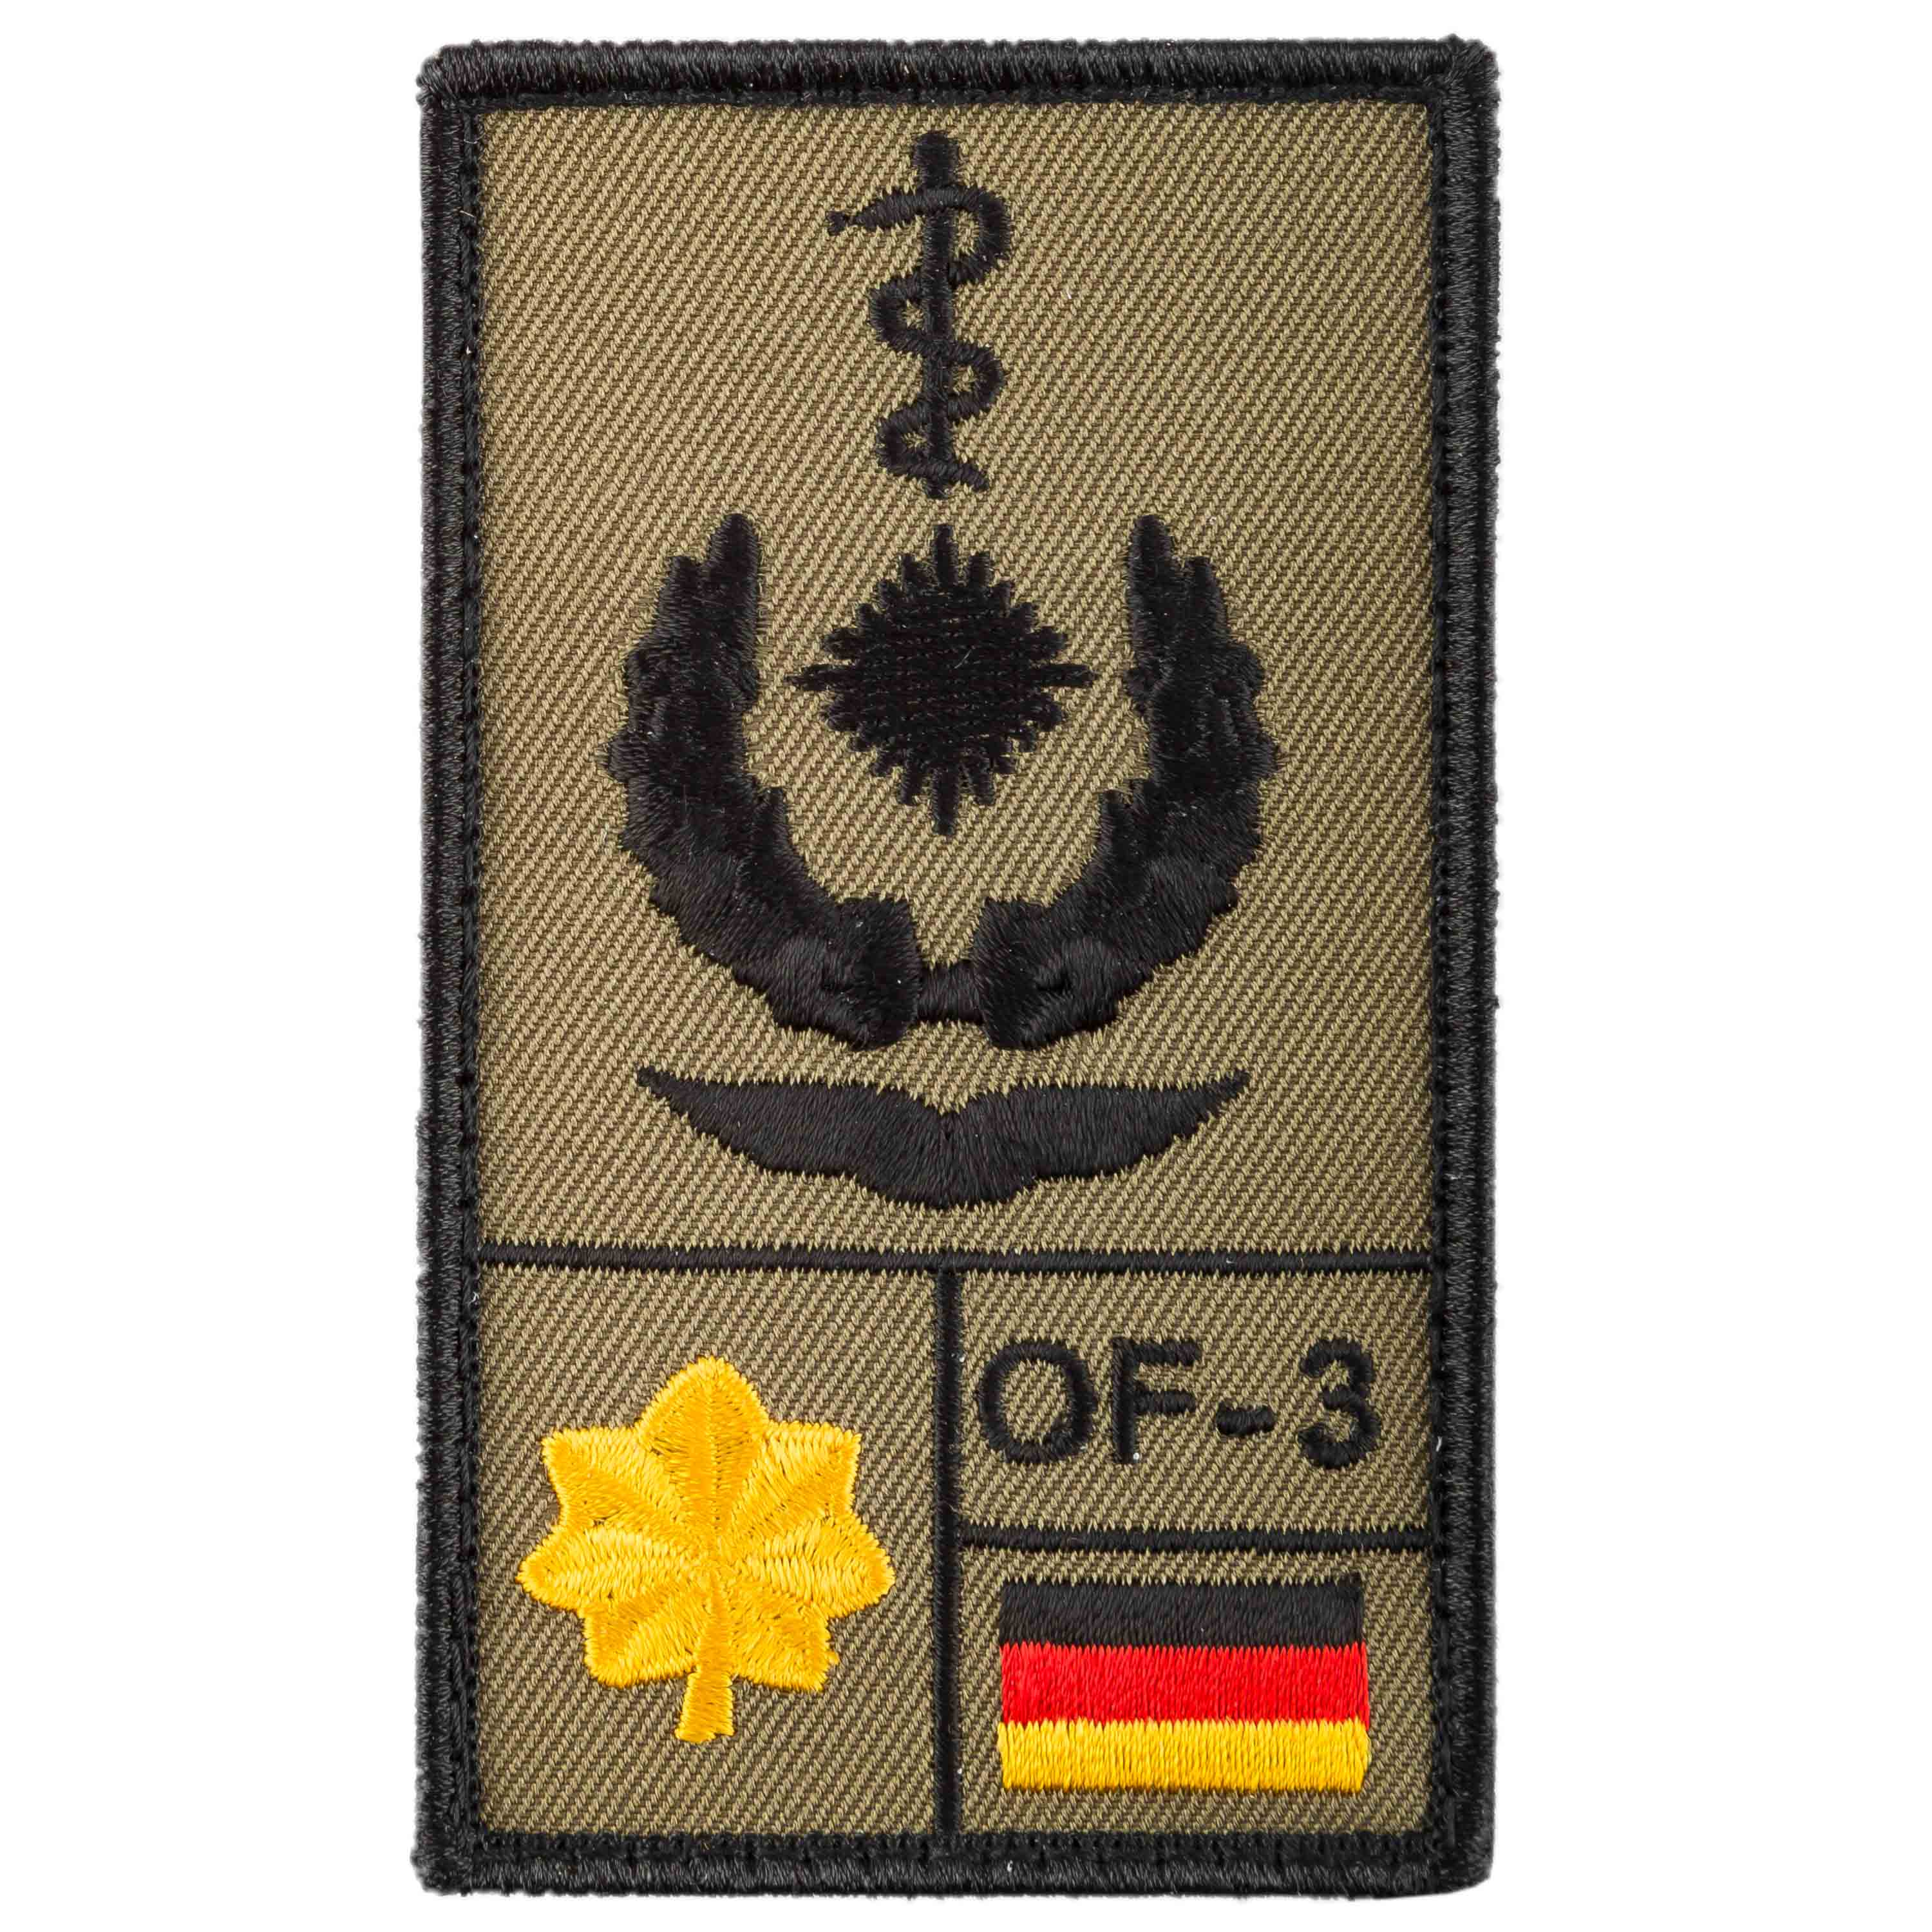 Café Viereck Rank Patch Oberstabsarzt Luftwaffe sand